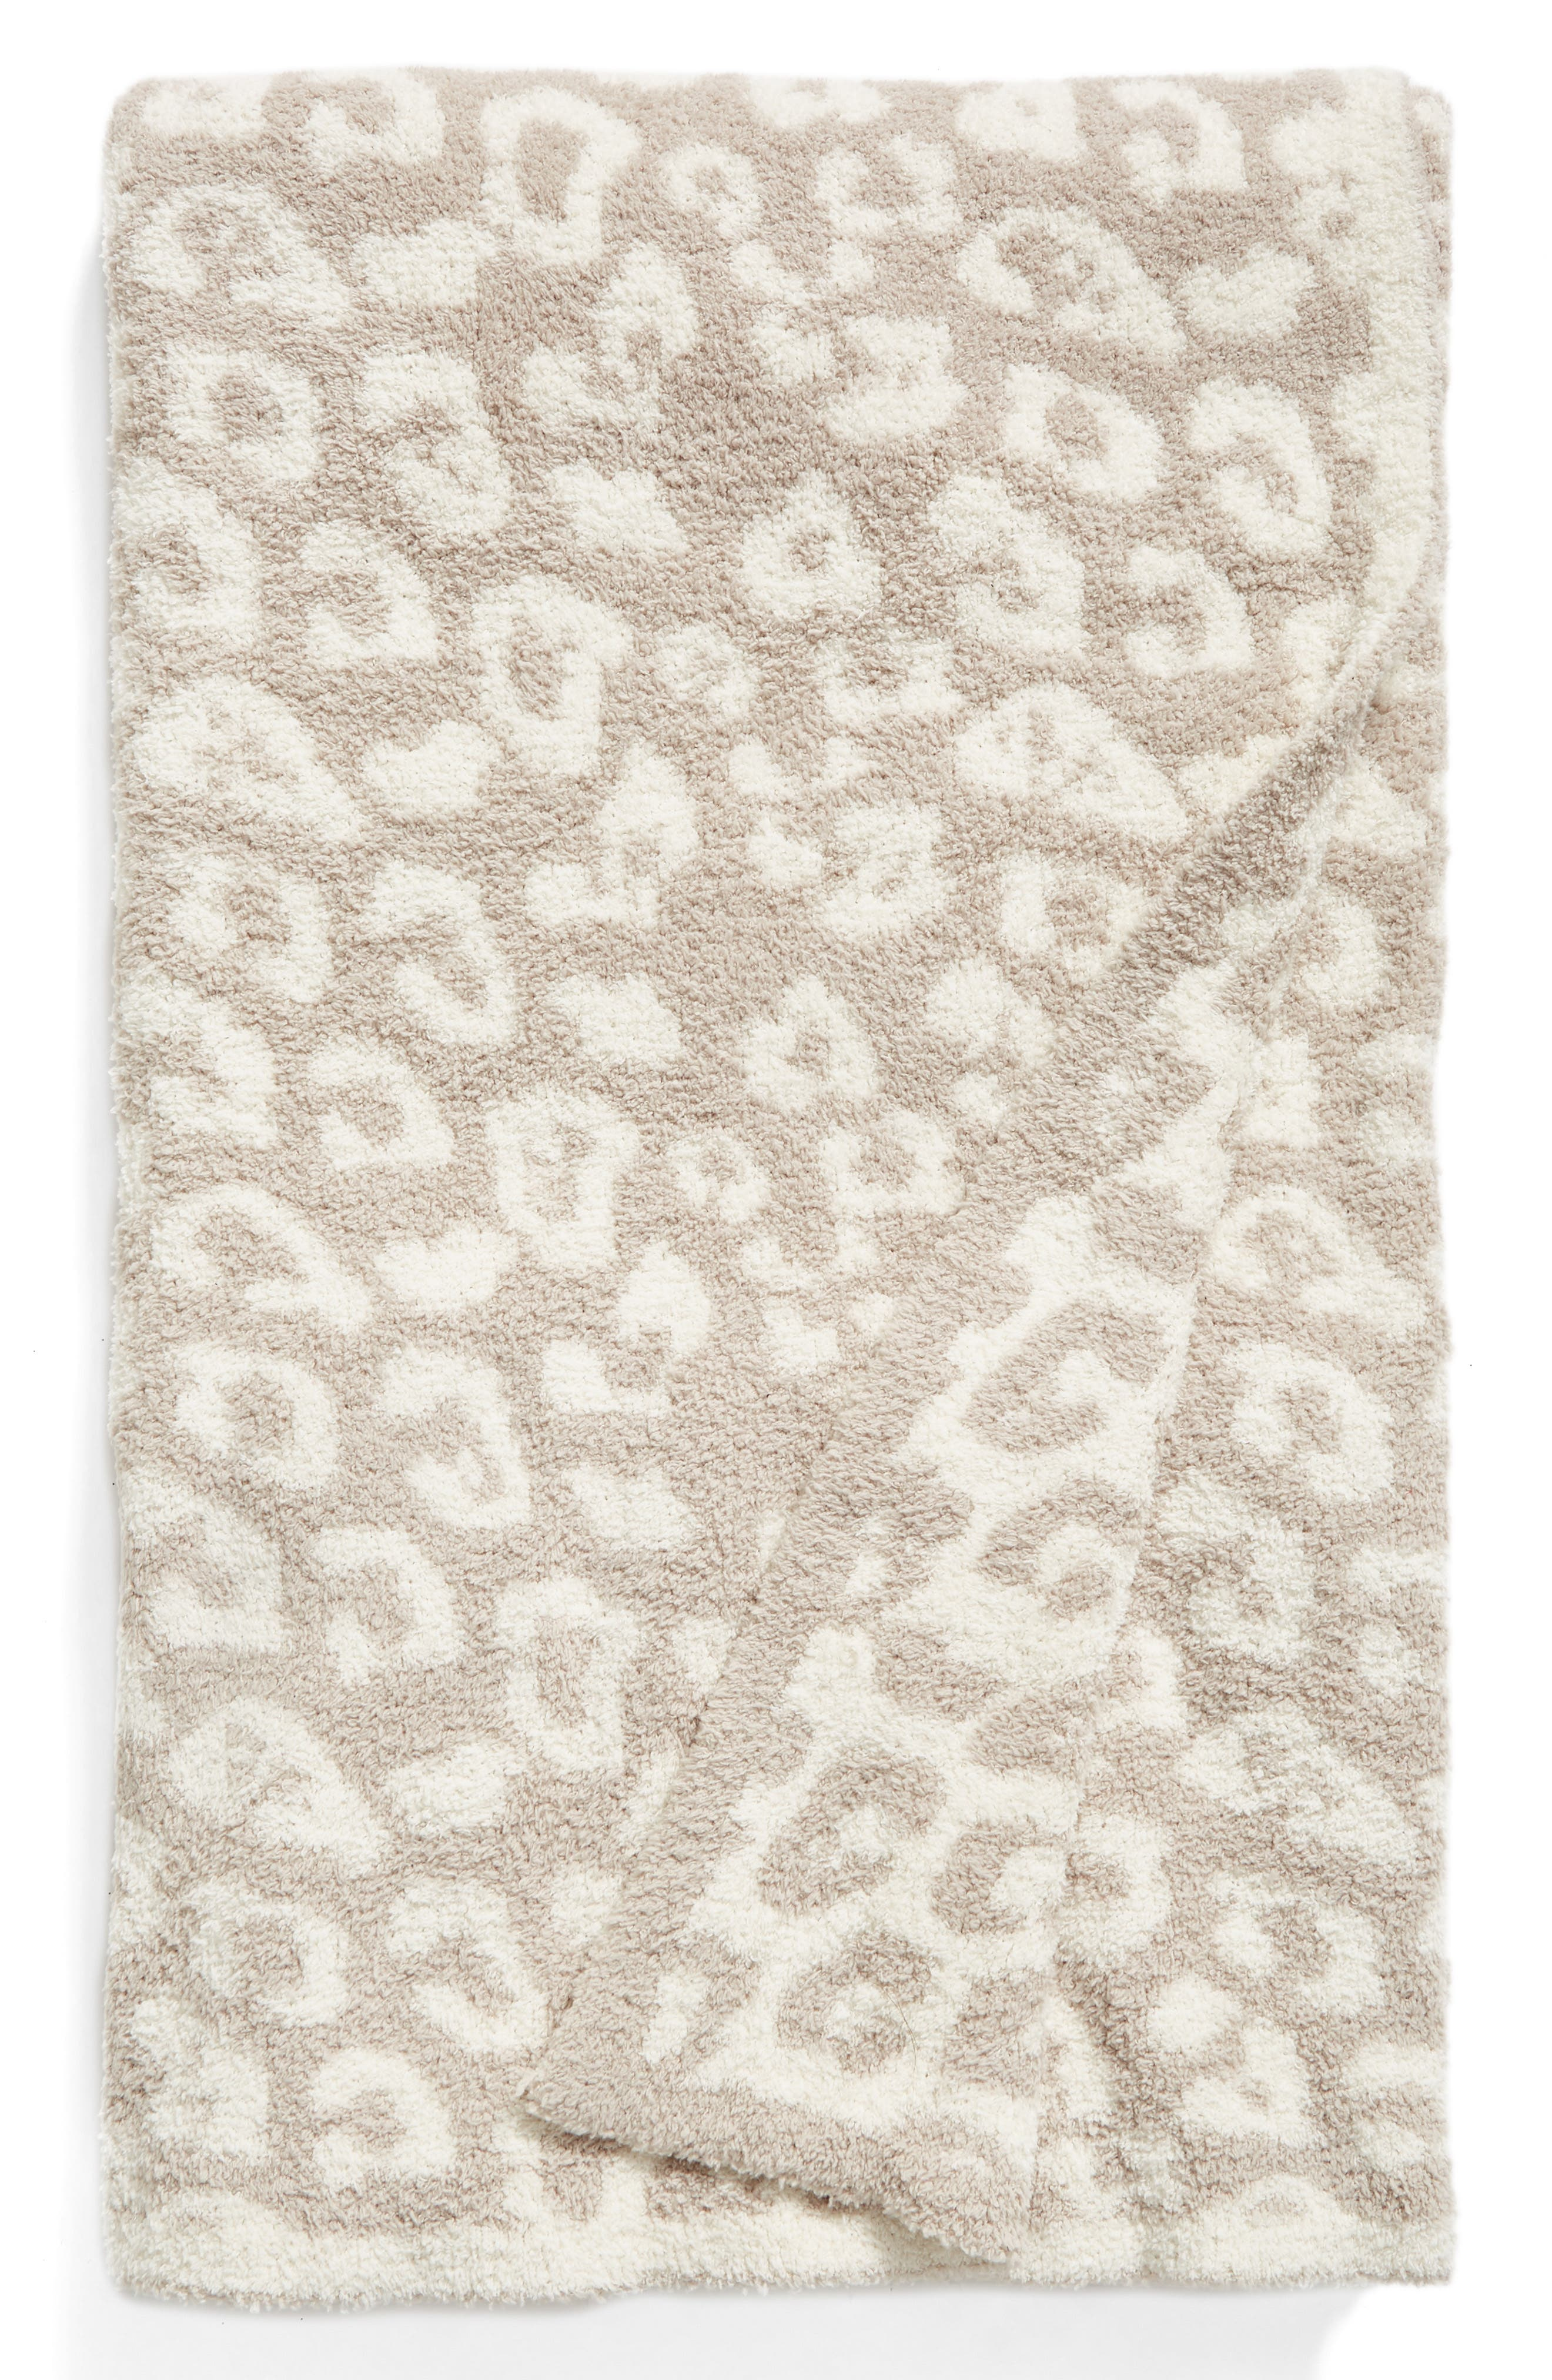 CozyChic 'In the Wild' Throw Blanket,                         Main,                         color, 250